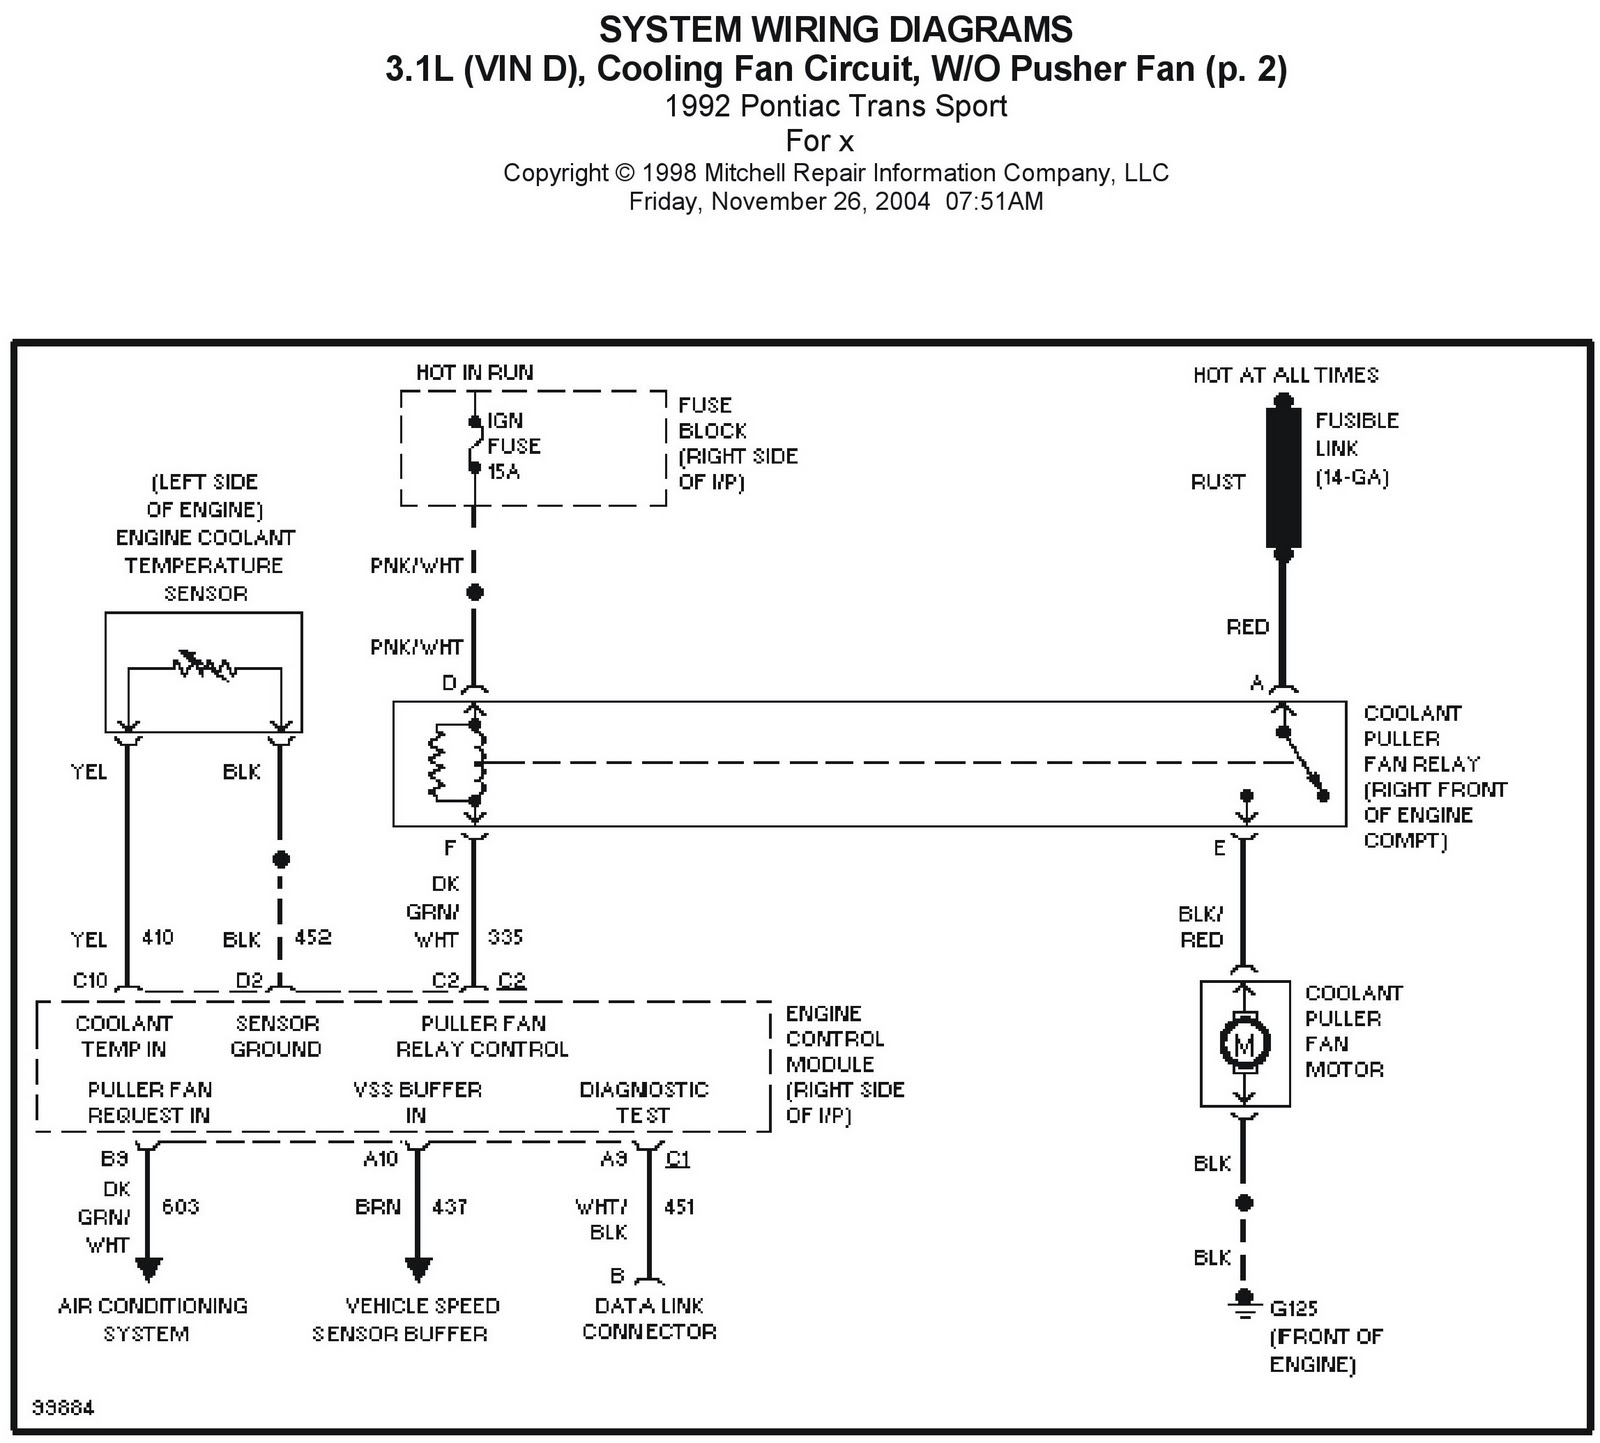 1992 Pontiac Trans Sport cooling fan circuit 1 wiring diagrams galleries 1992 pontiac trans sport radio wiring diagram at soozxer.org